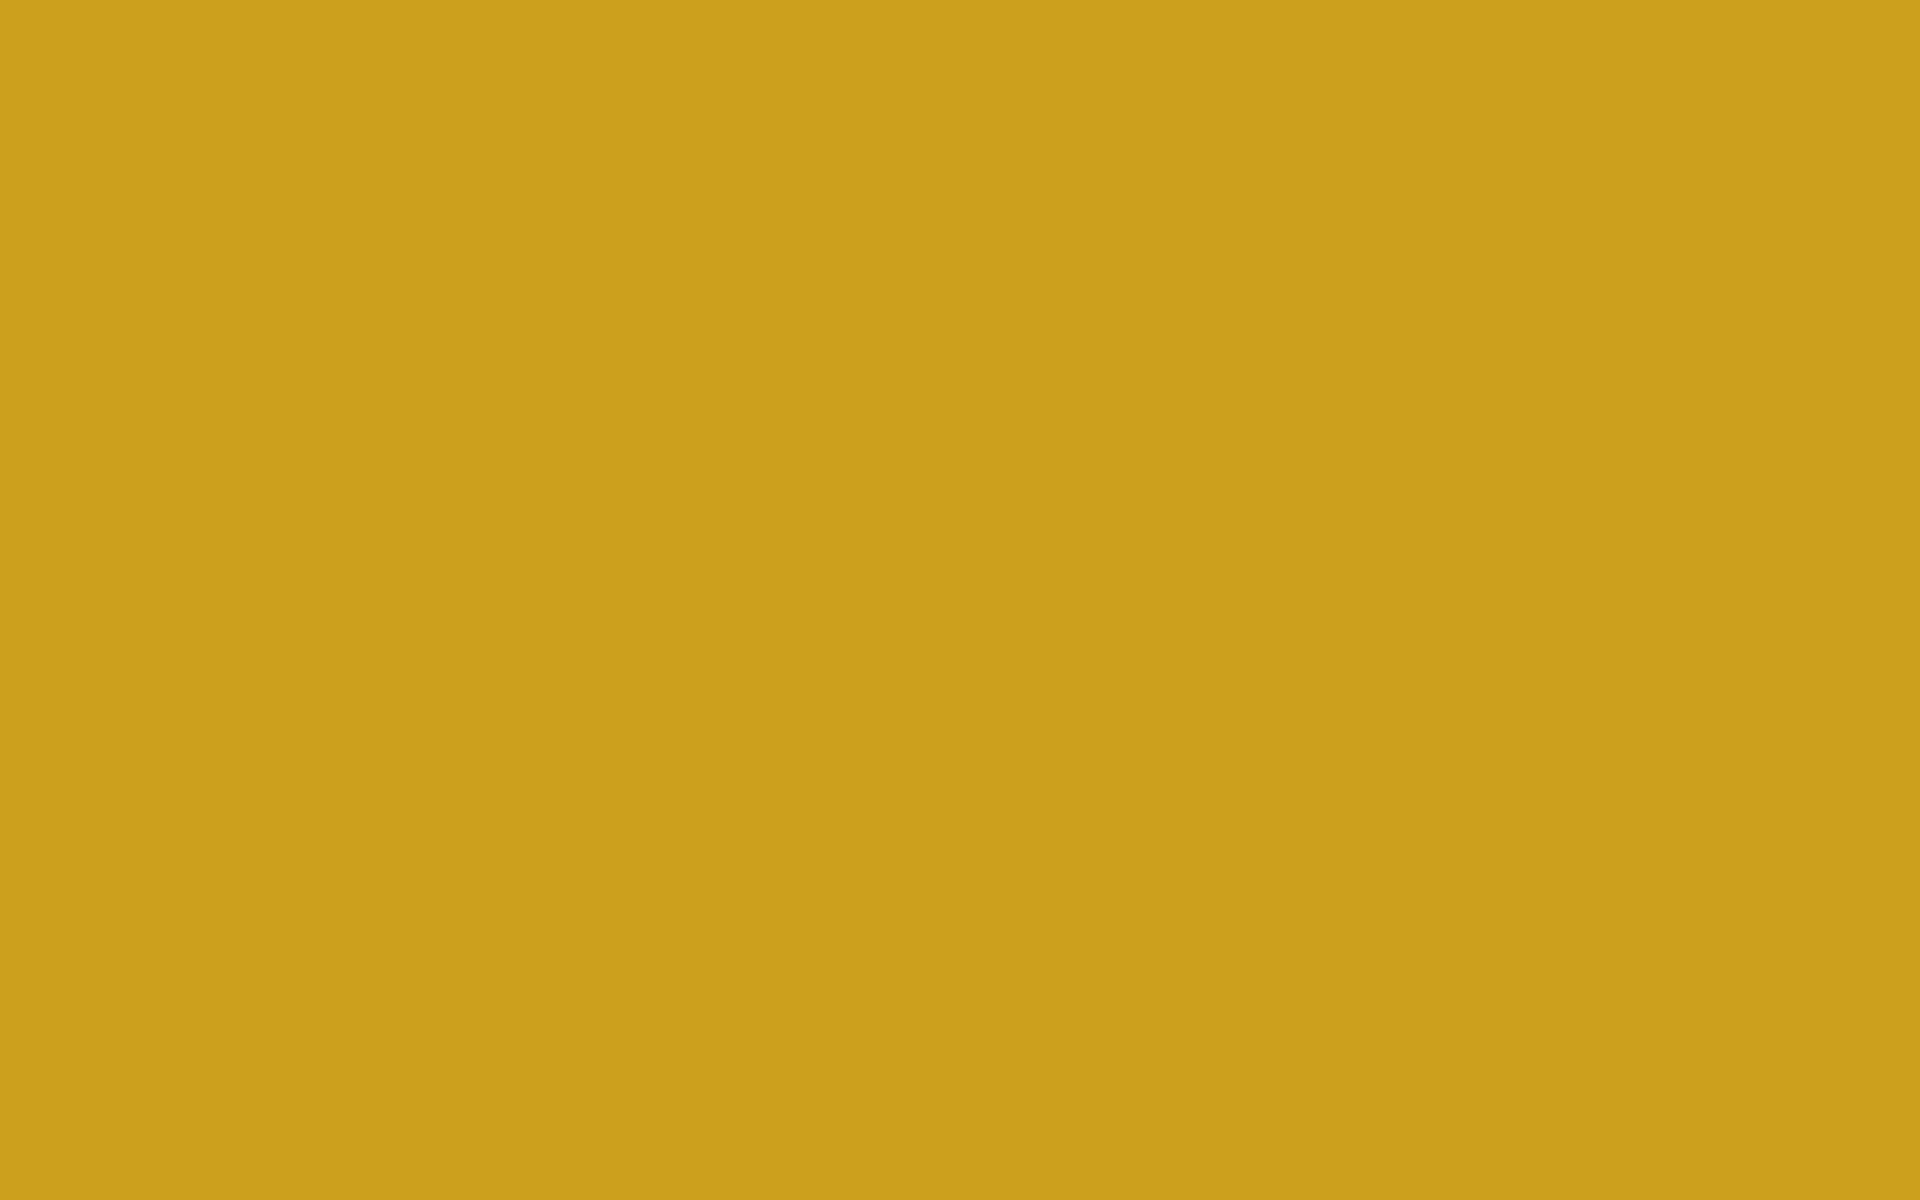 1920x1200 Lemon Curry Solid Color Background